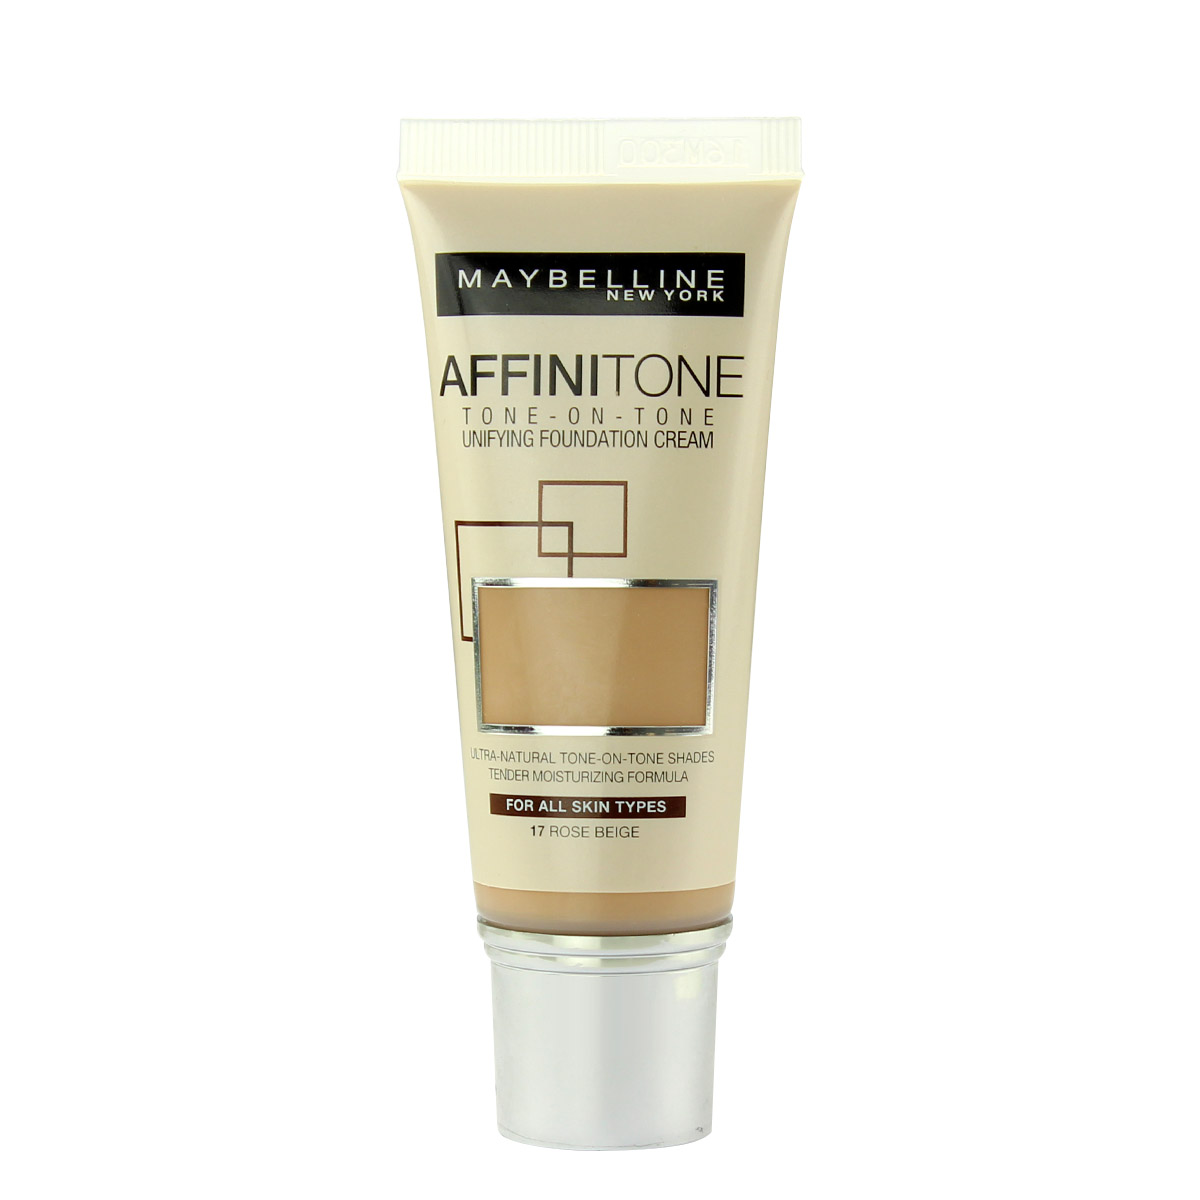 Maybelline Affinitone Unifying Foundation Cream (17 Rose Beige) 30 ml